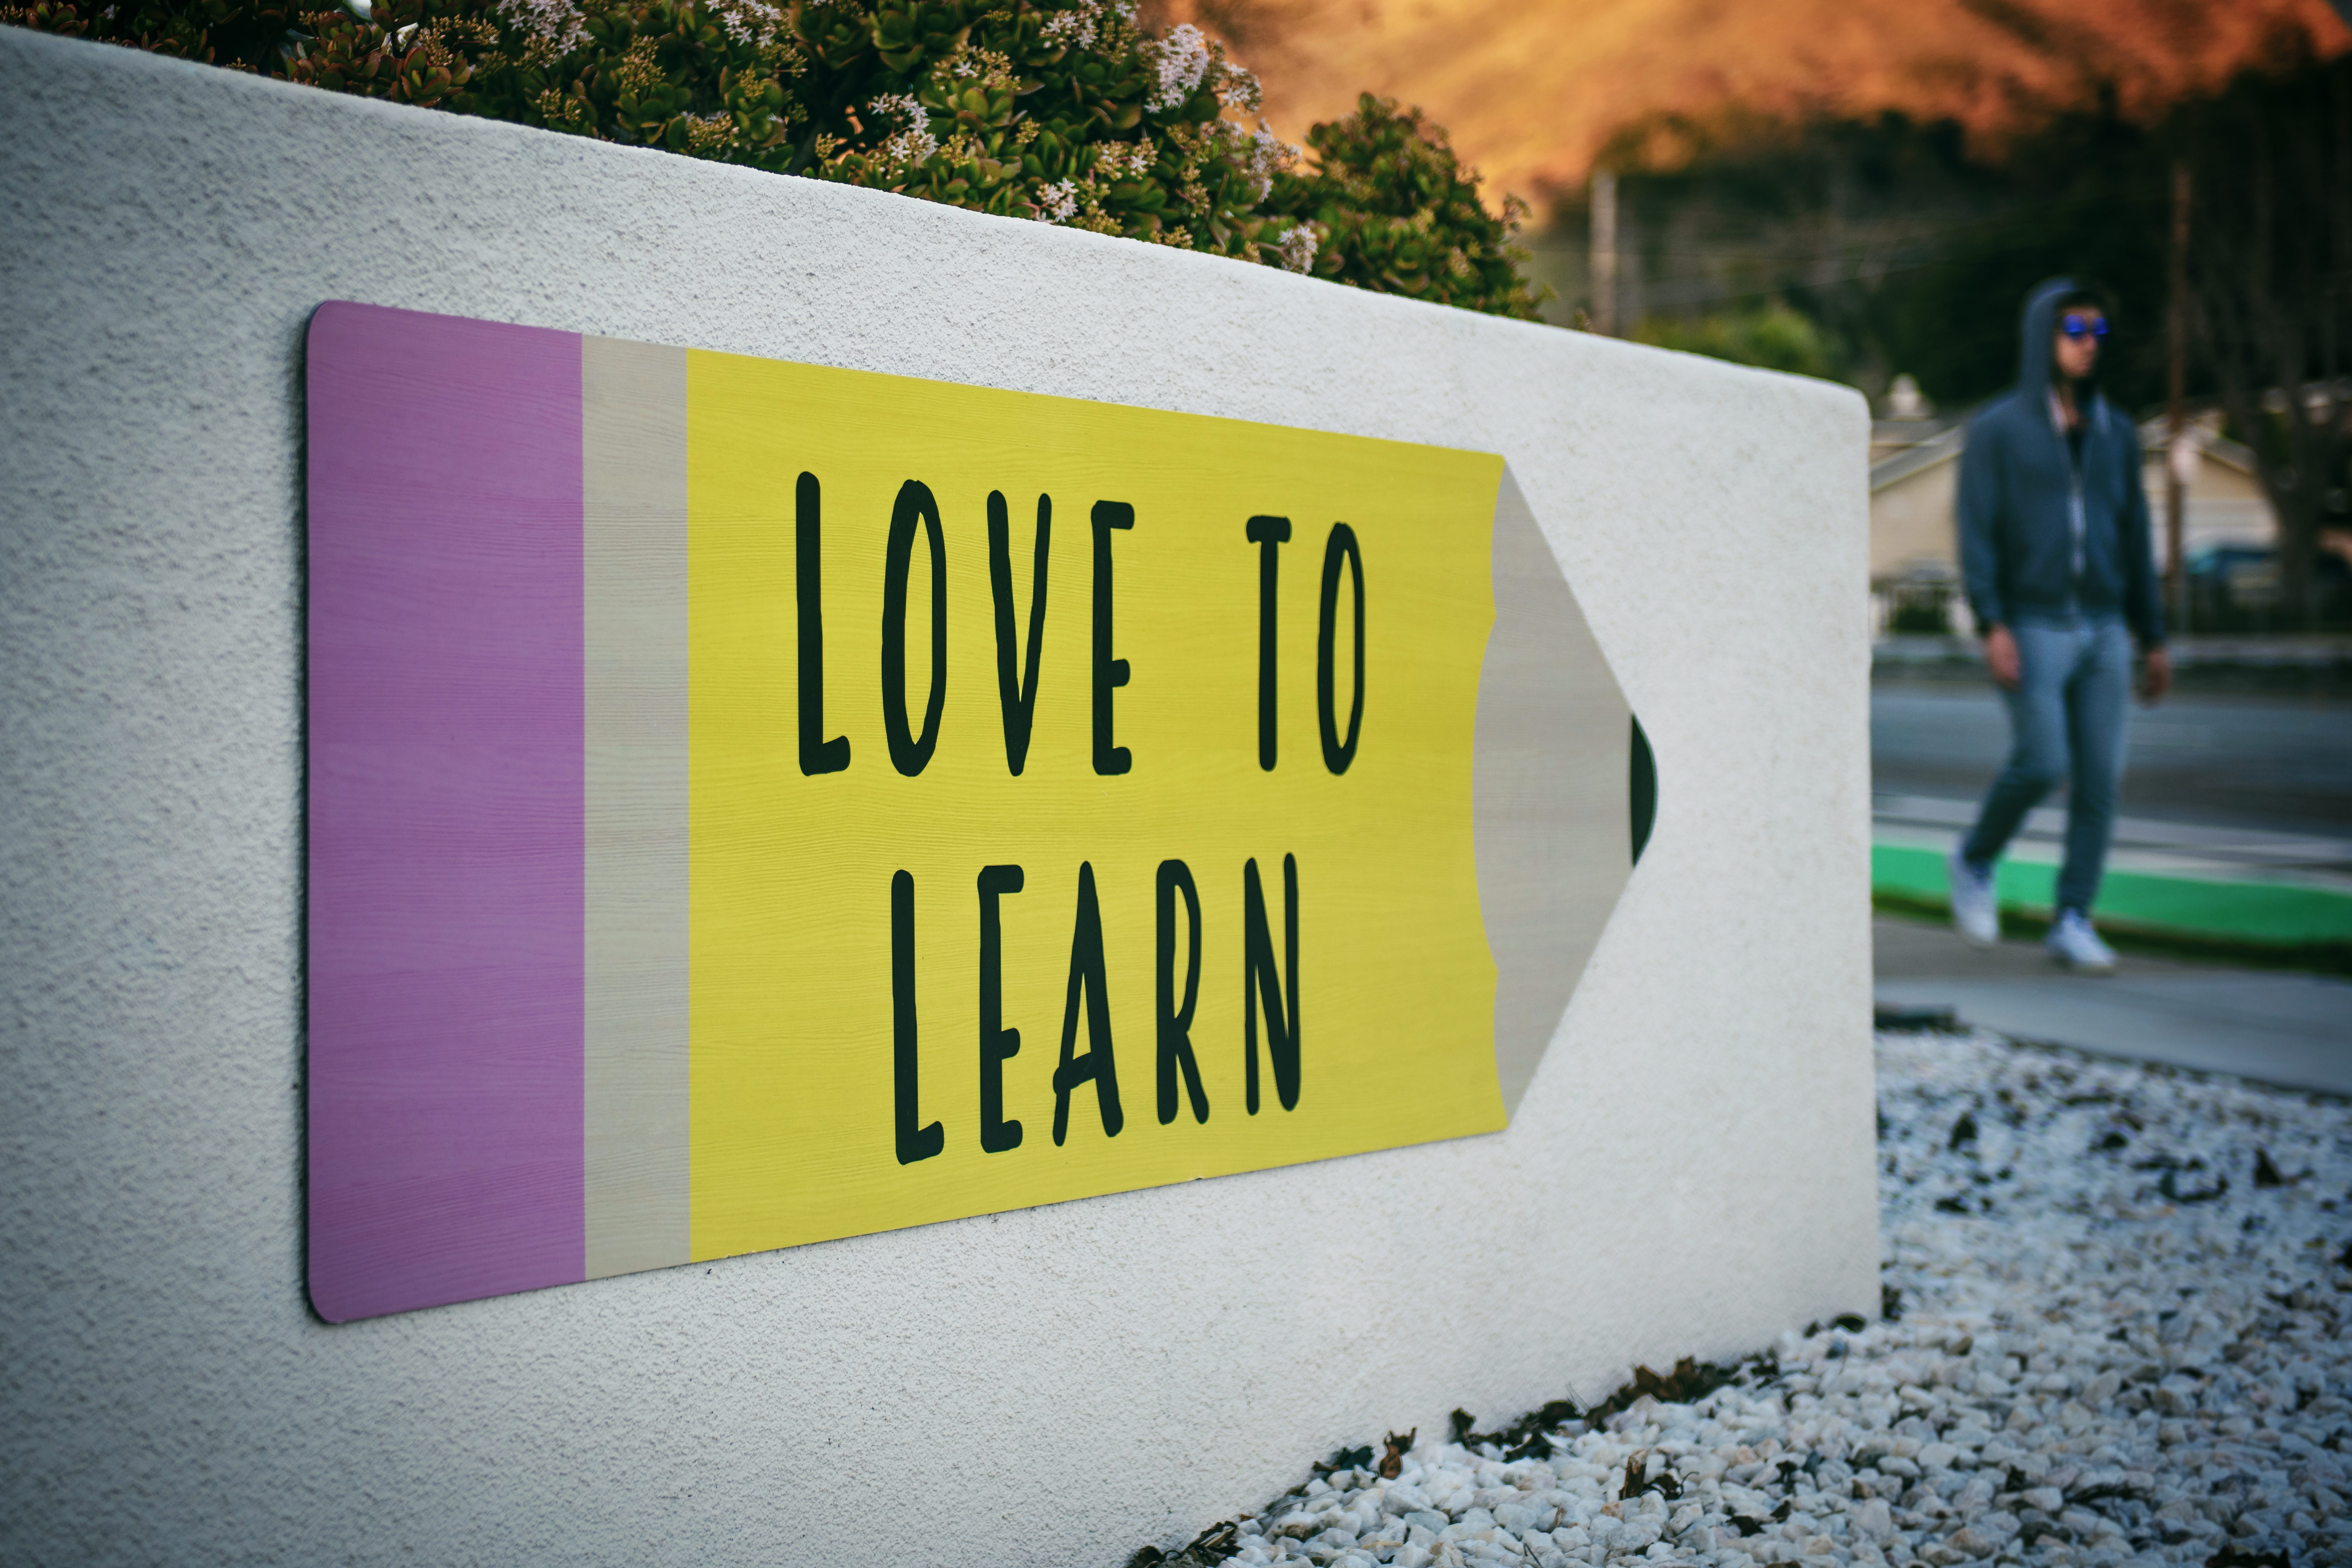 """Love to learn"" pencil signage on wall near walking man; image by Tim Mossholder, via Unsplash.com."